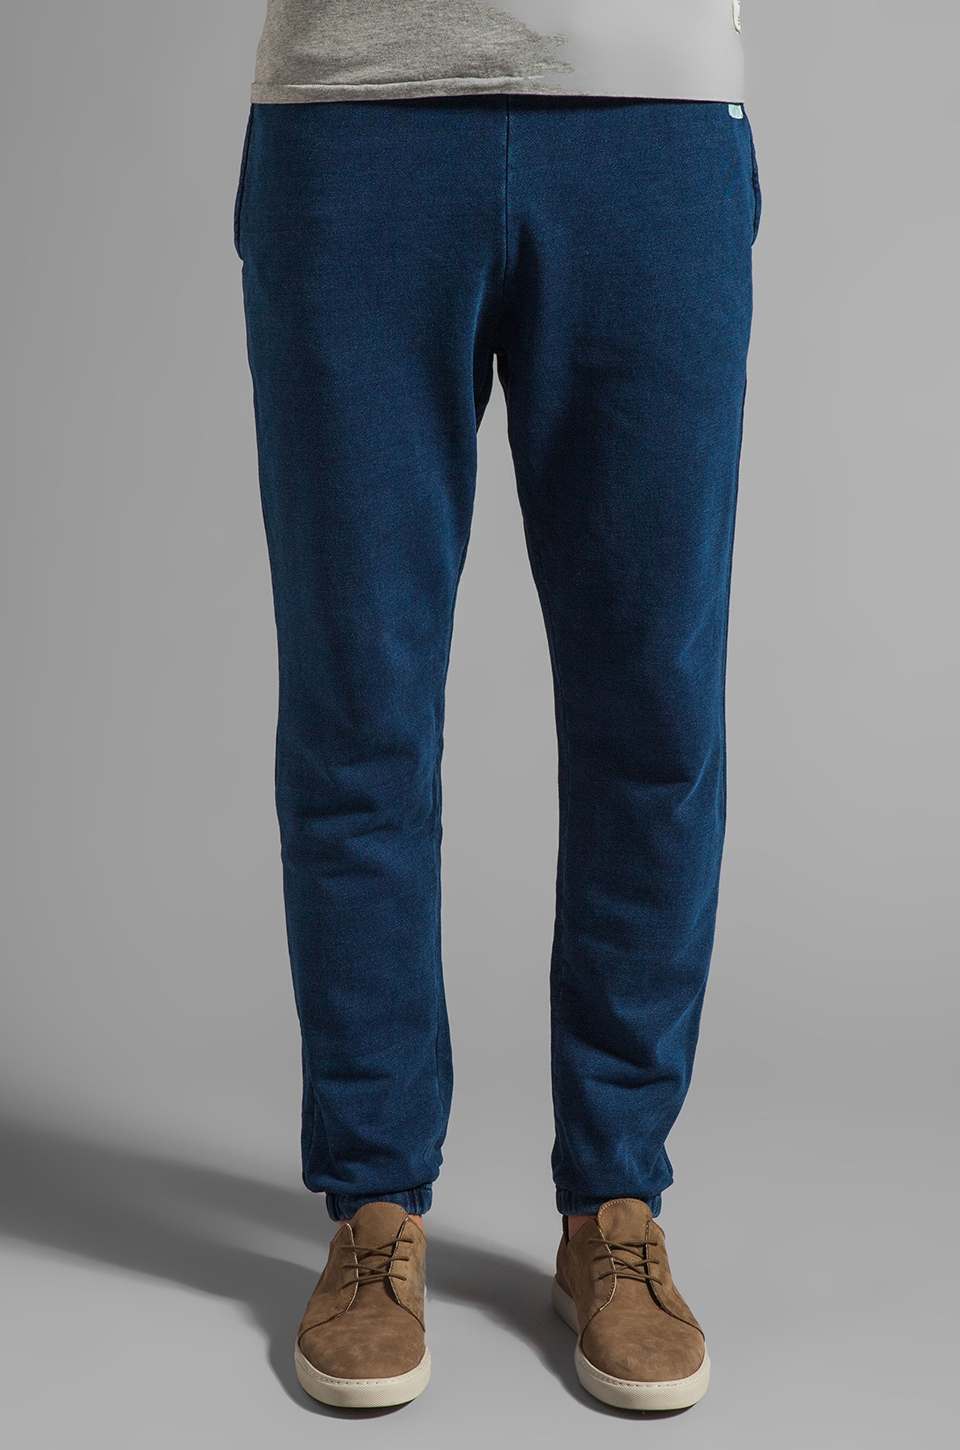 Scotch & Soda Home Alone Jogging Pant in Indigo